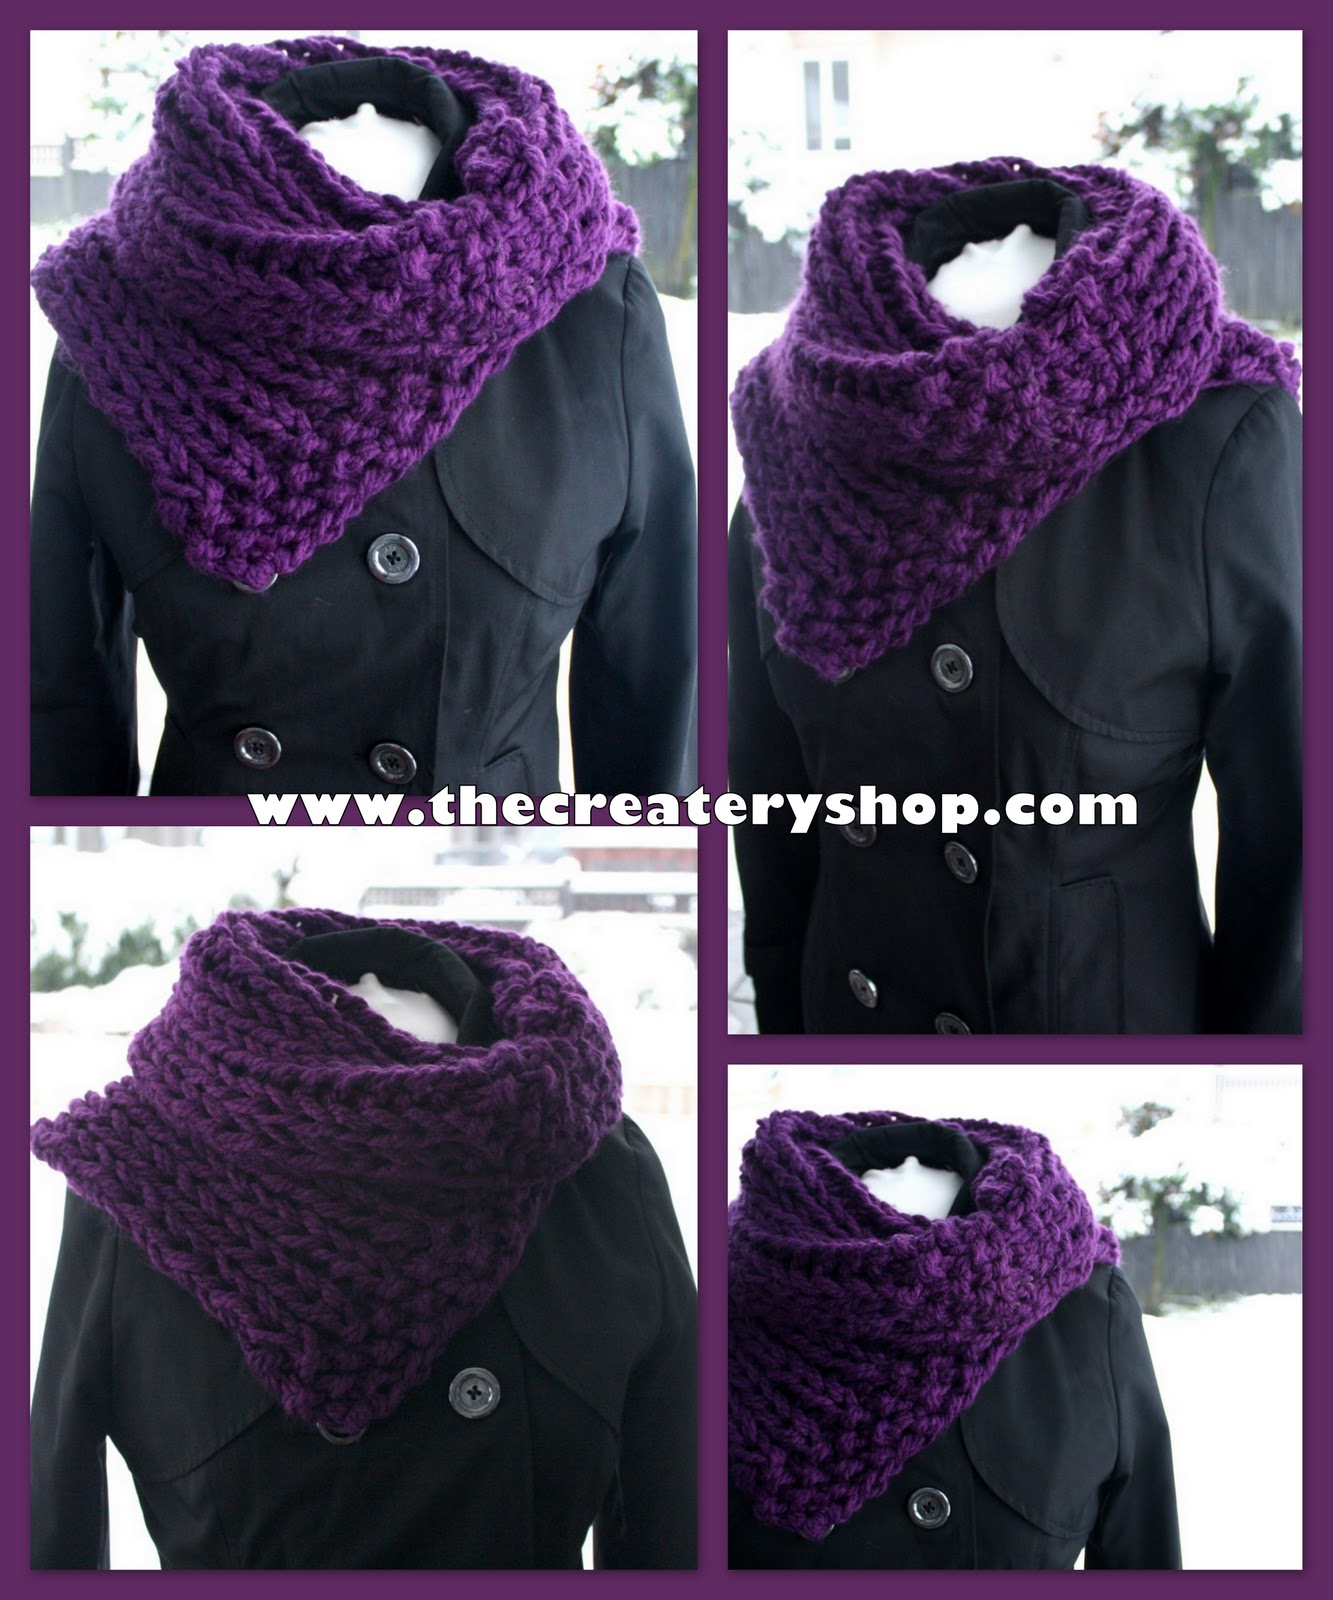 Chunky Knit Cowl Pattern Free : The Createry Shop: Free Easy 3C Chunky Collar Cowl Knitting Pattern